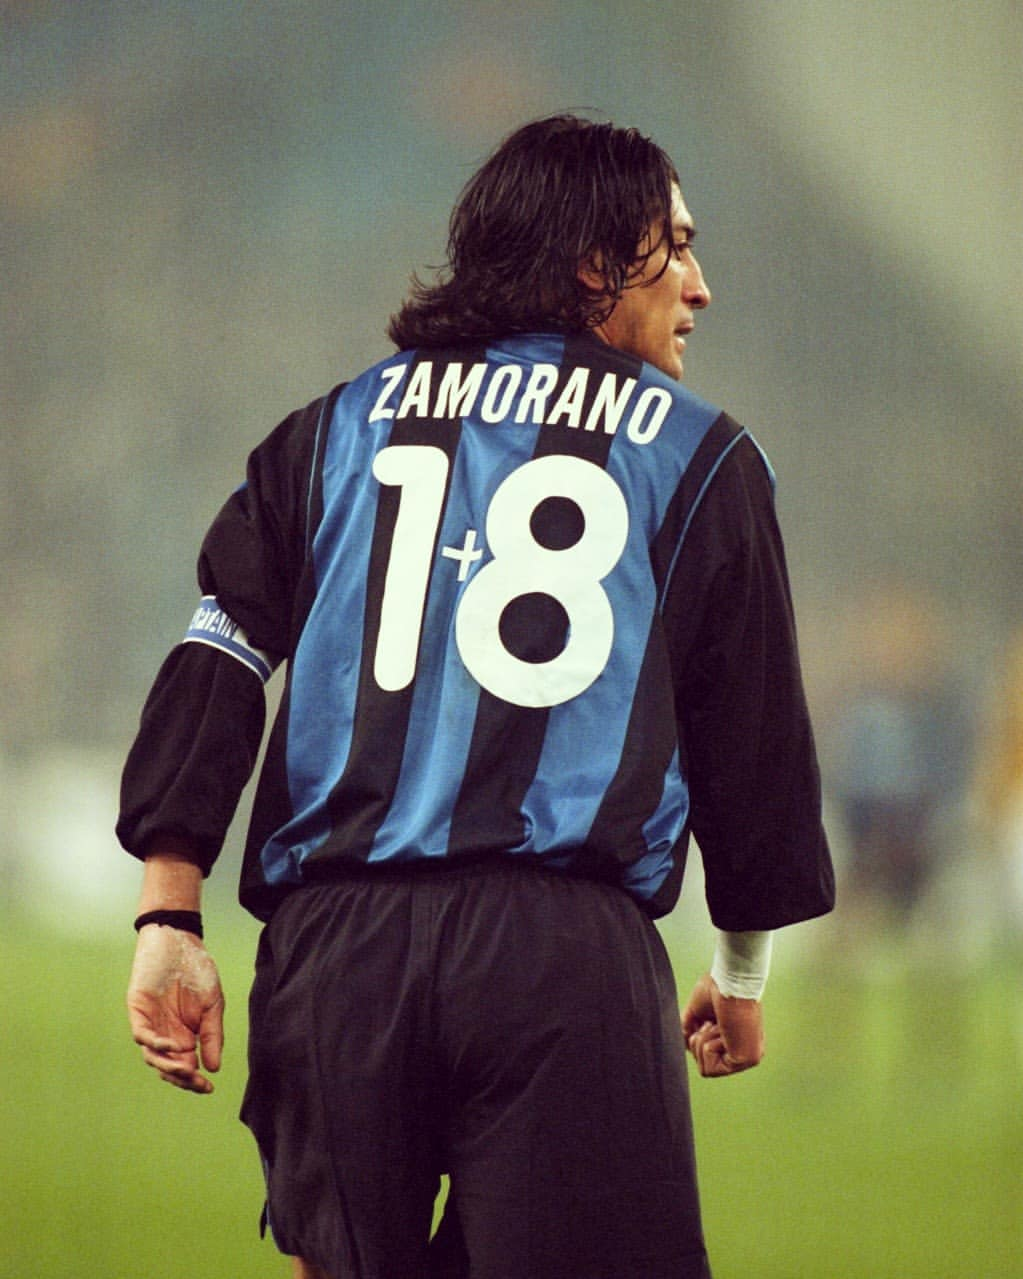 maillot-zamorano-1+8-football